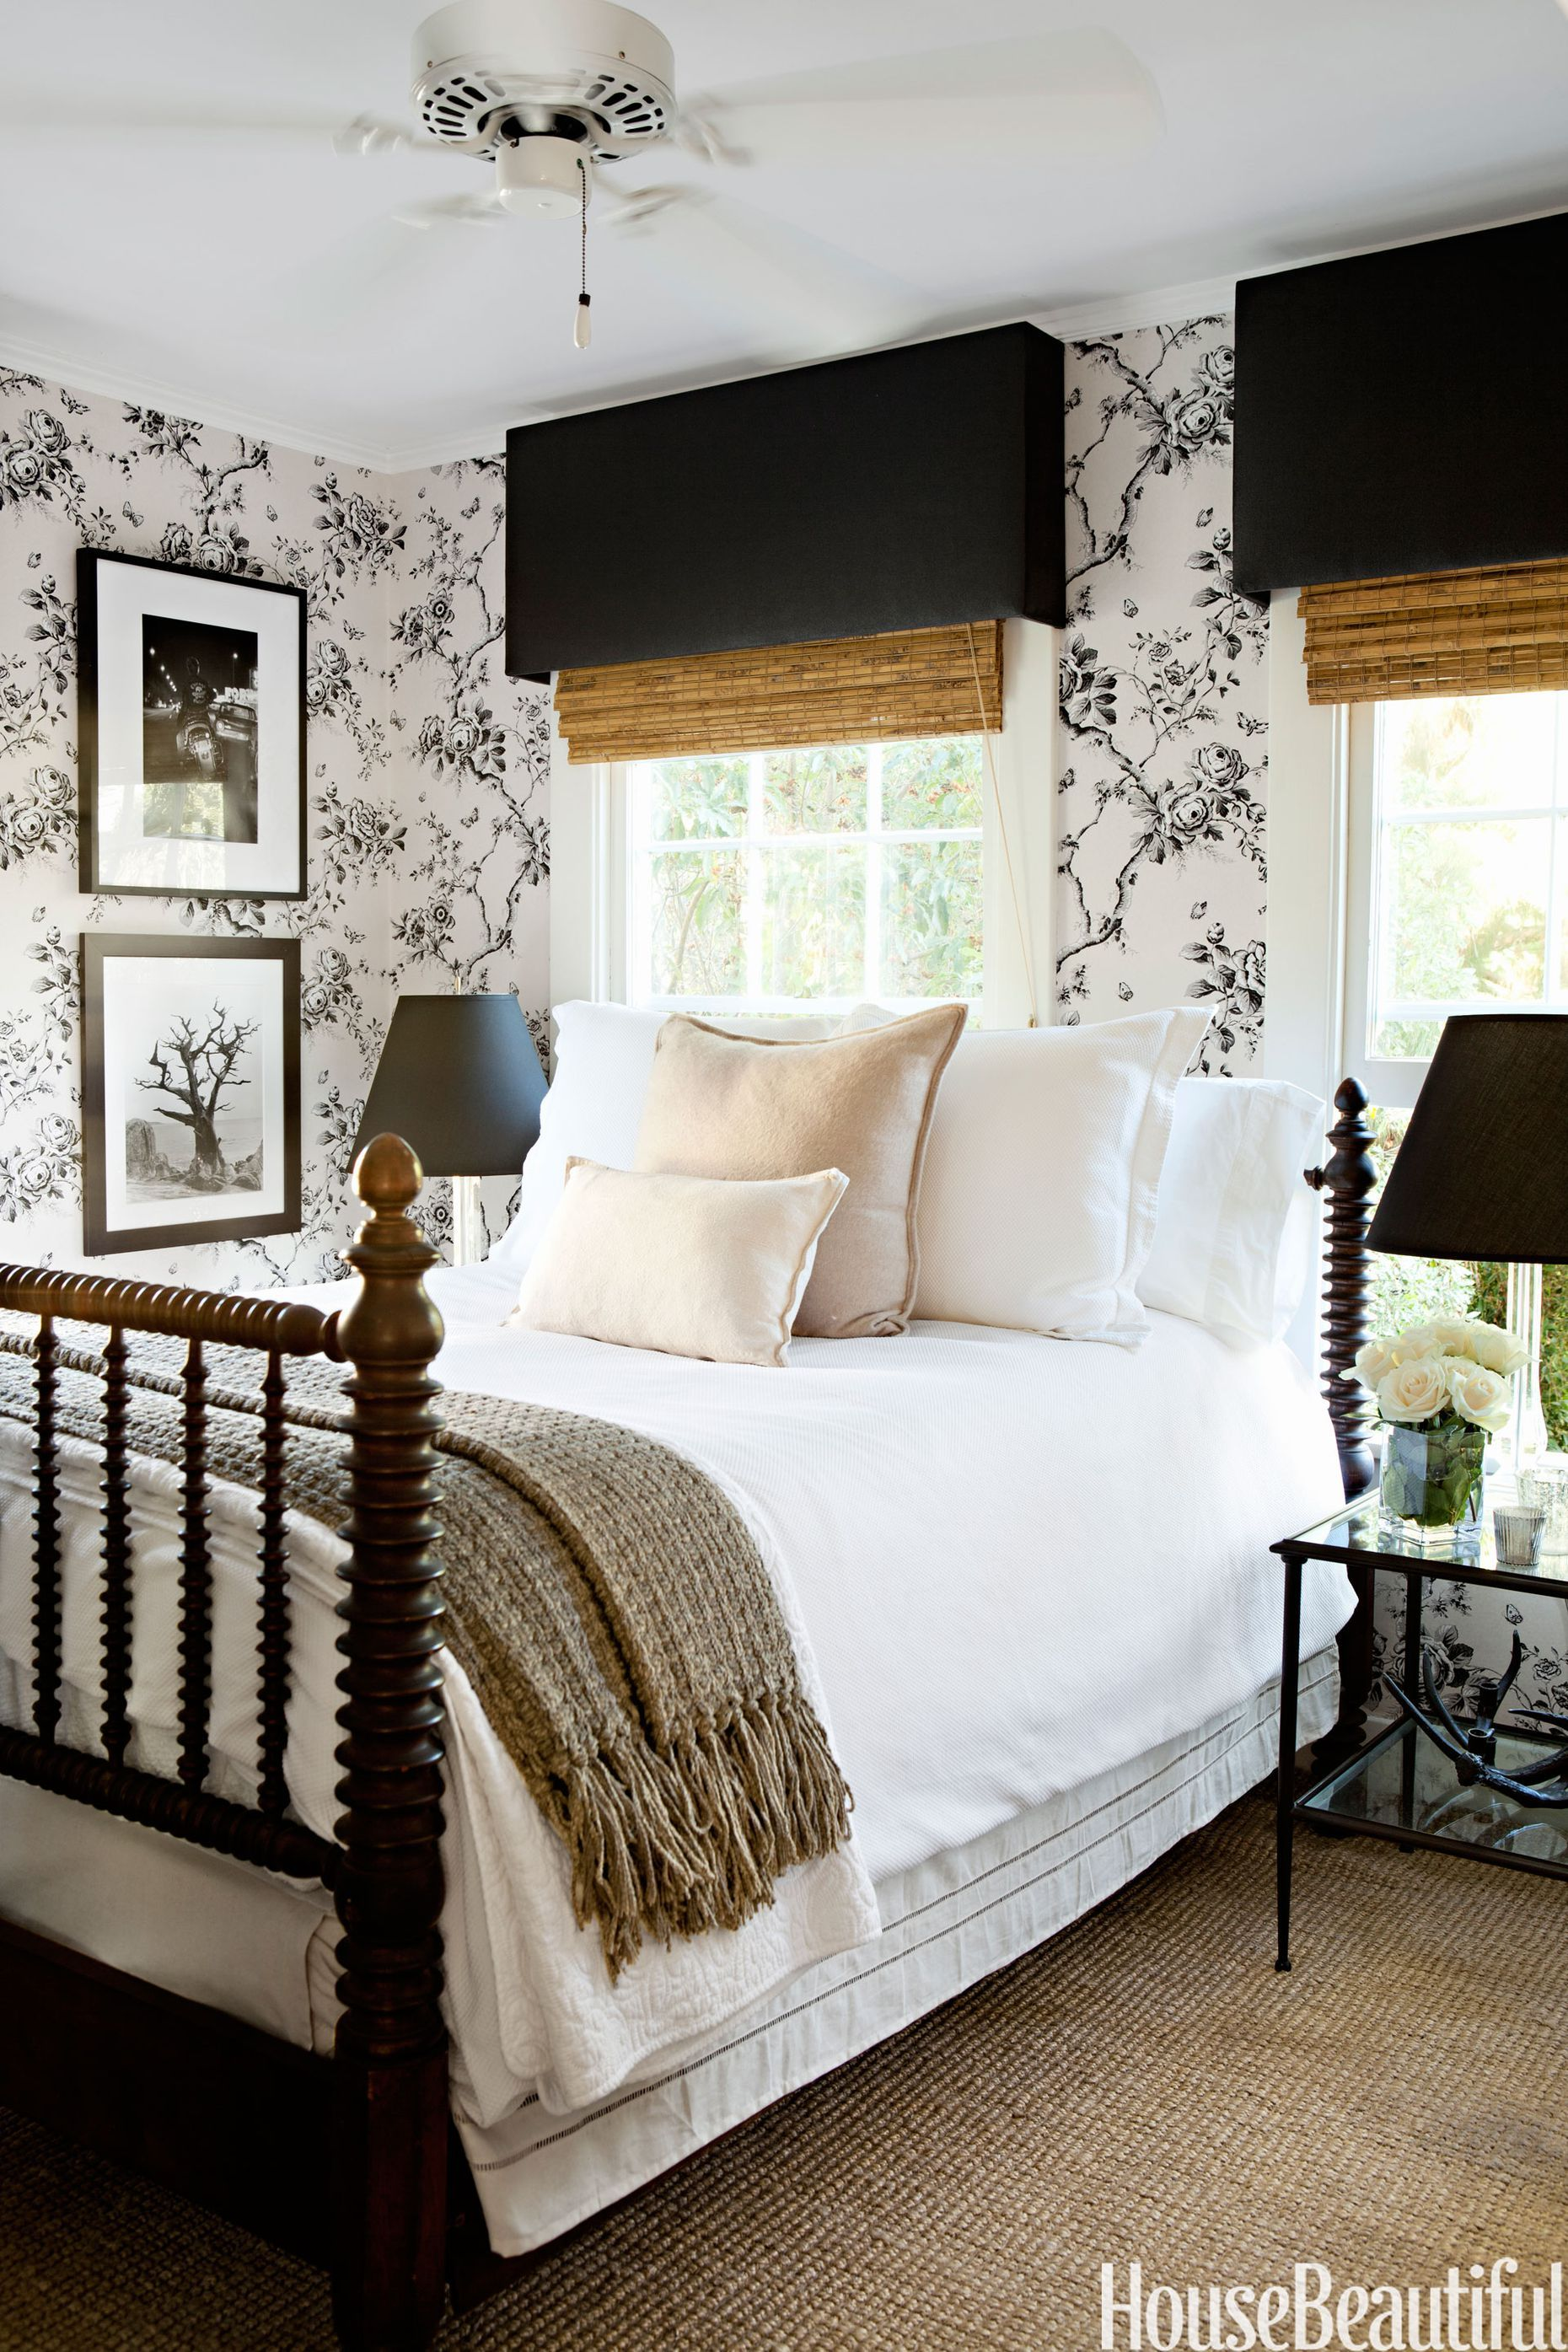 15 Beautiful Black And White Bedroom Ideas Black And White